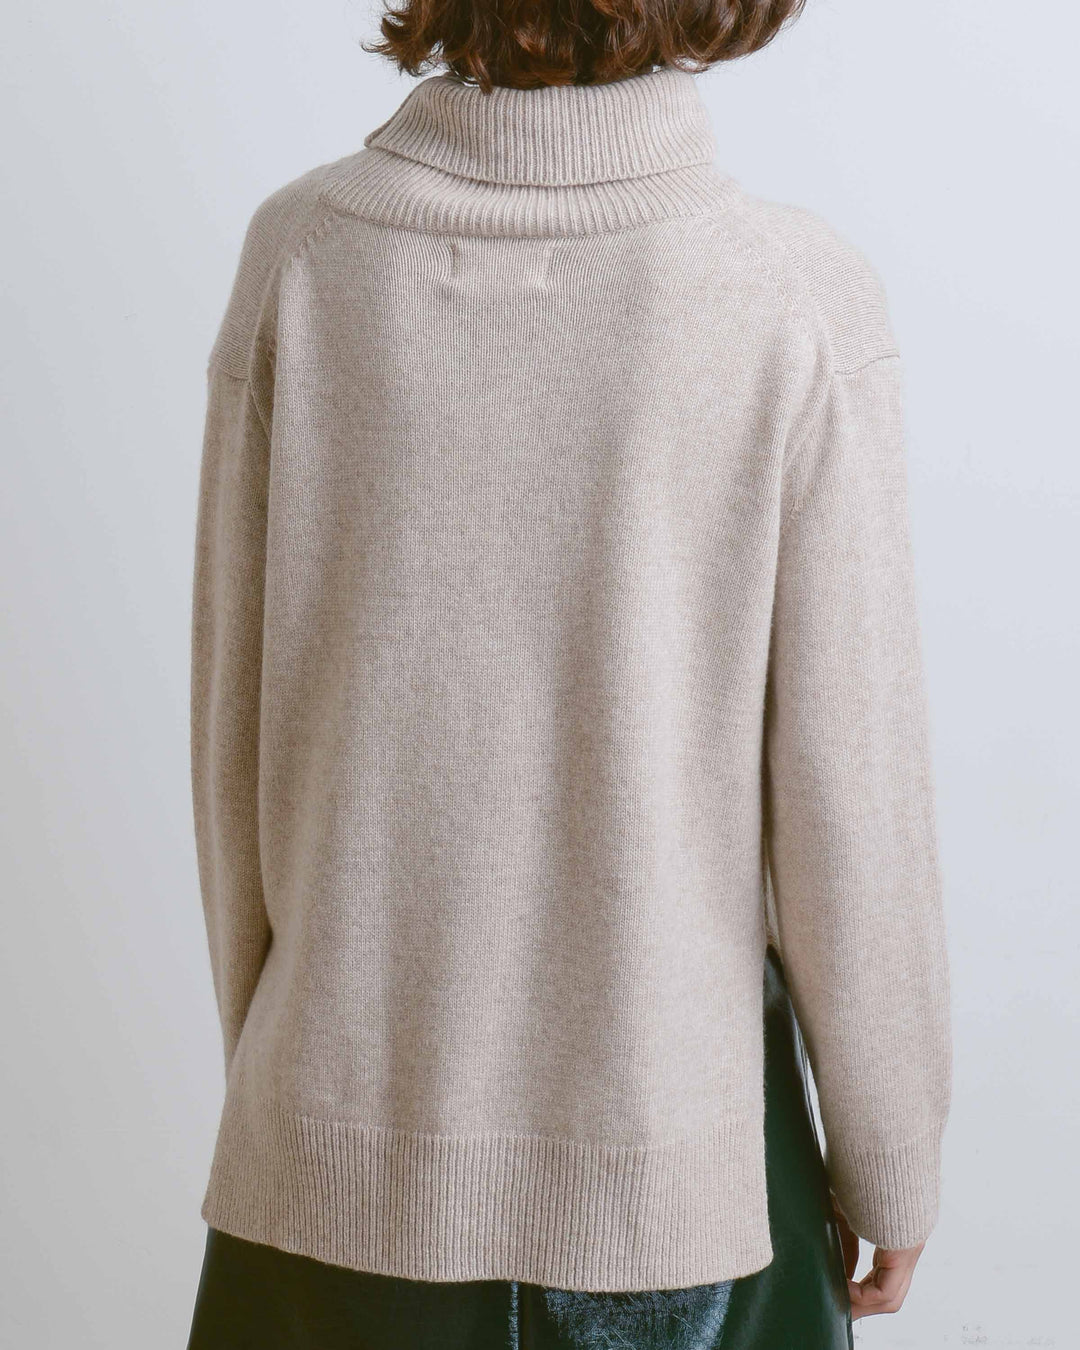 Oatmeal Turtle Neck Knit Top